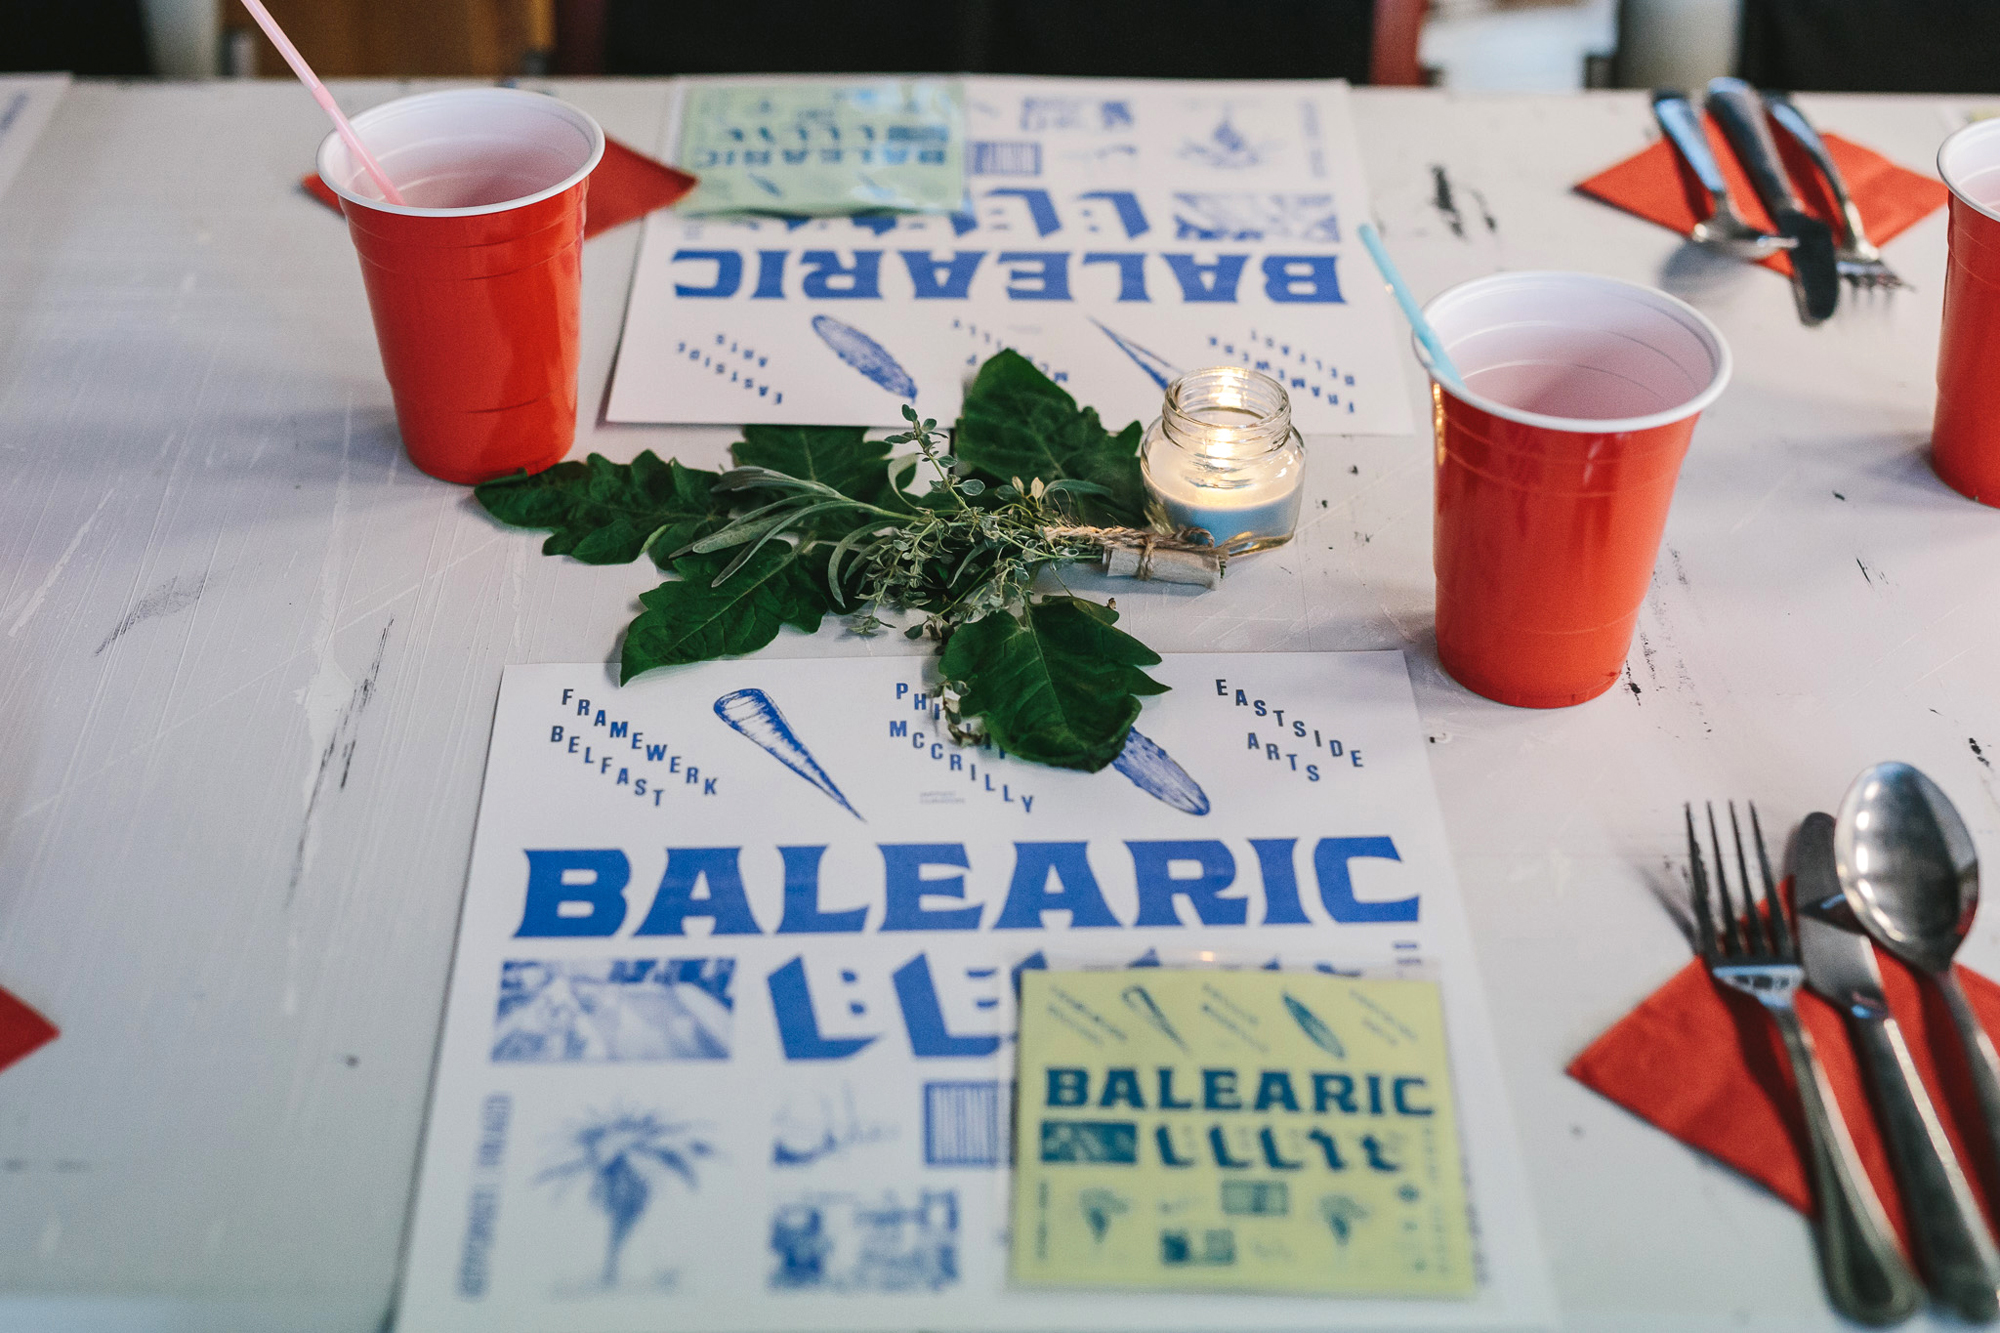 Cover image: Balearic Beets